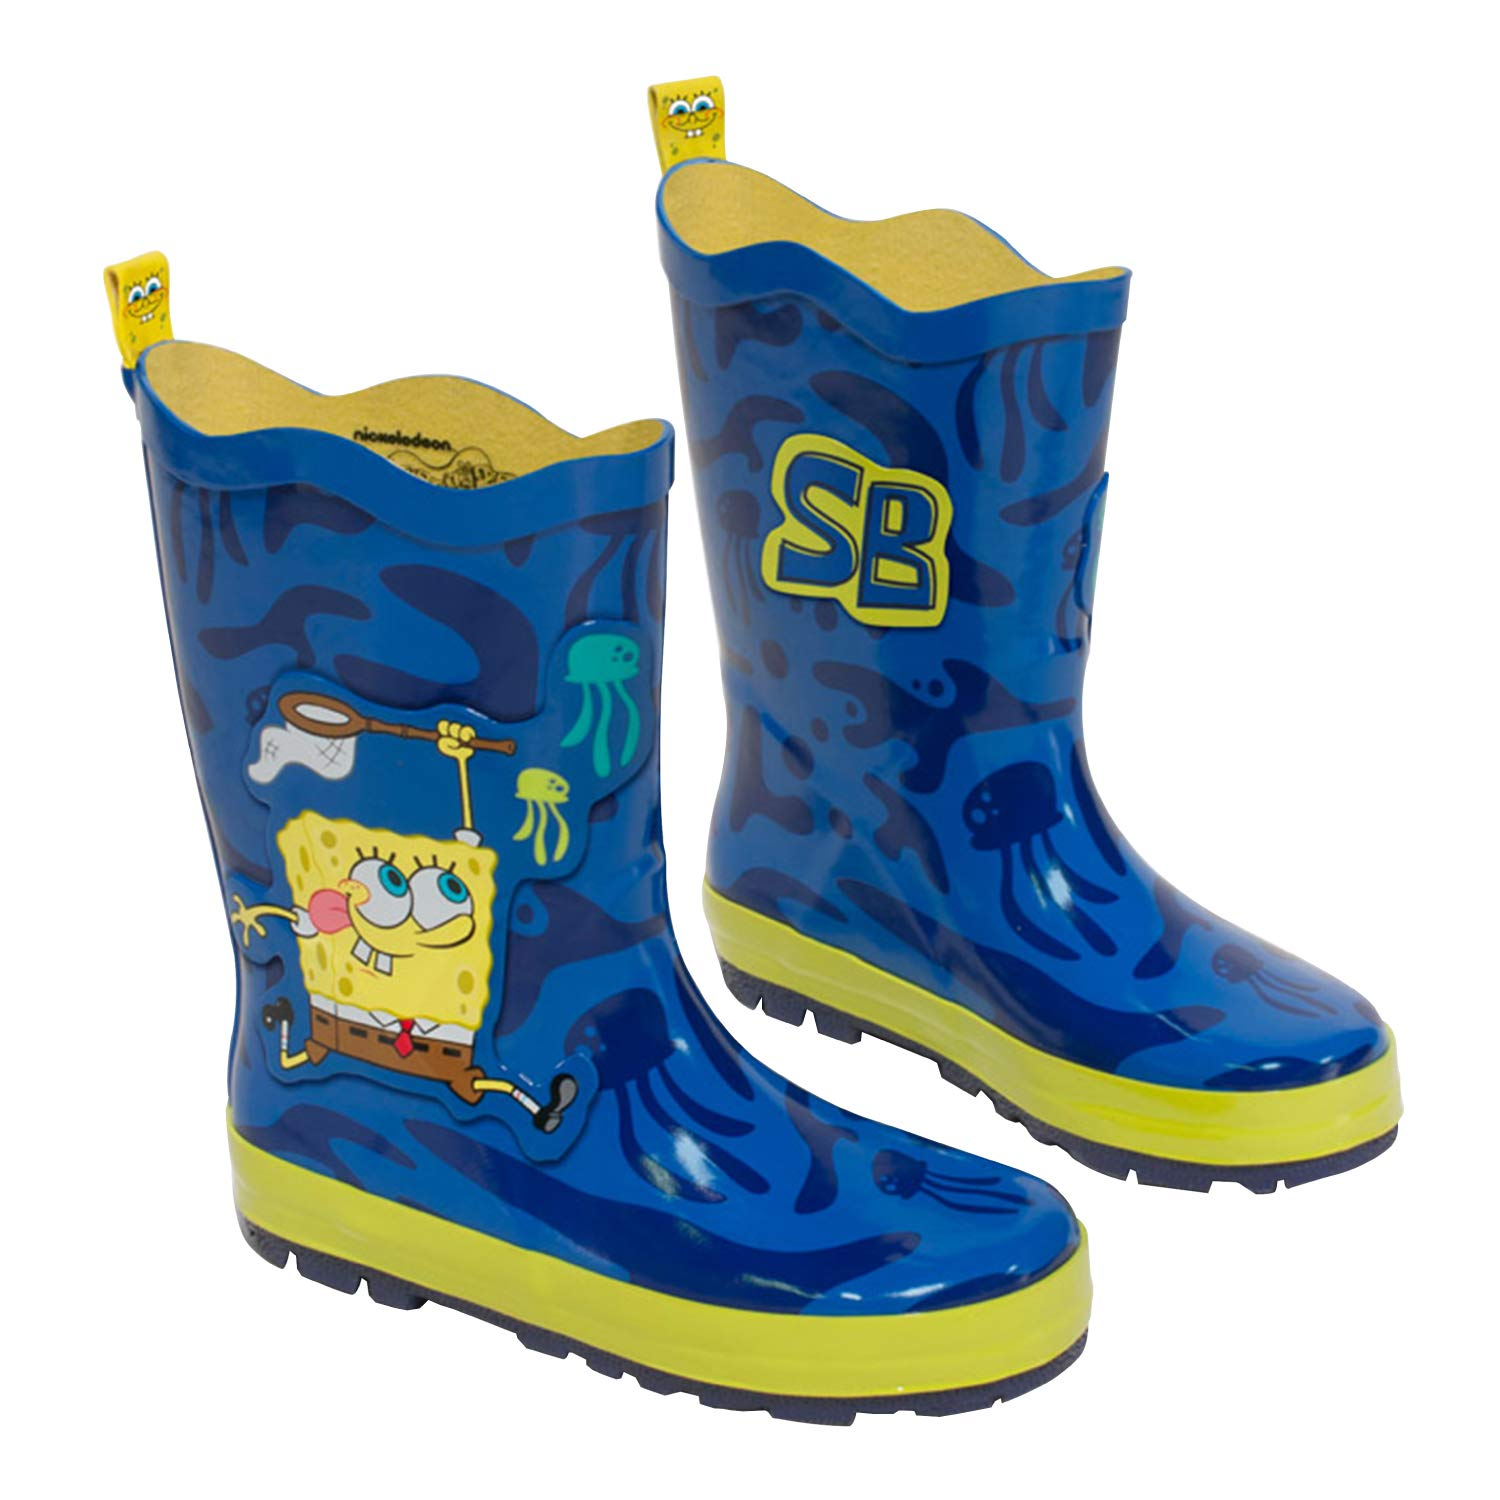 Amazon.com: Kidorable Bob Esponja Azul Natural Botas de ...